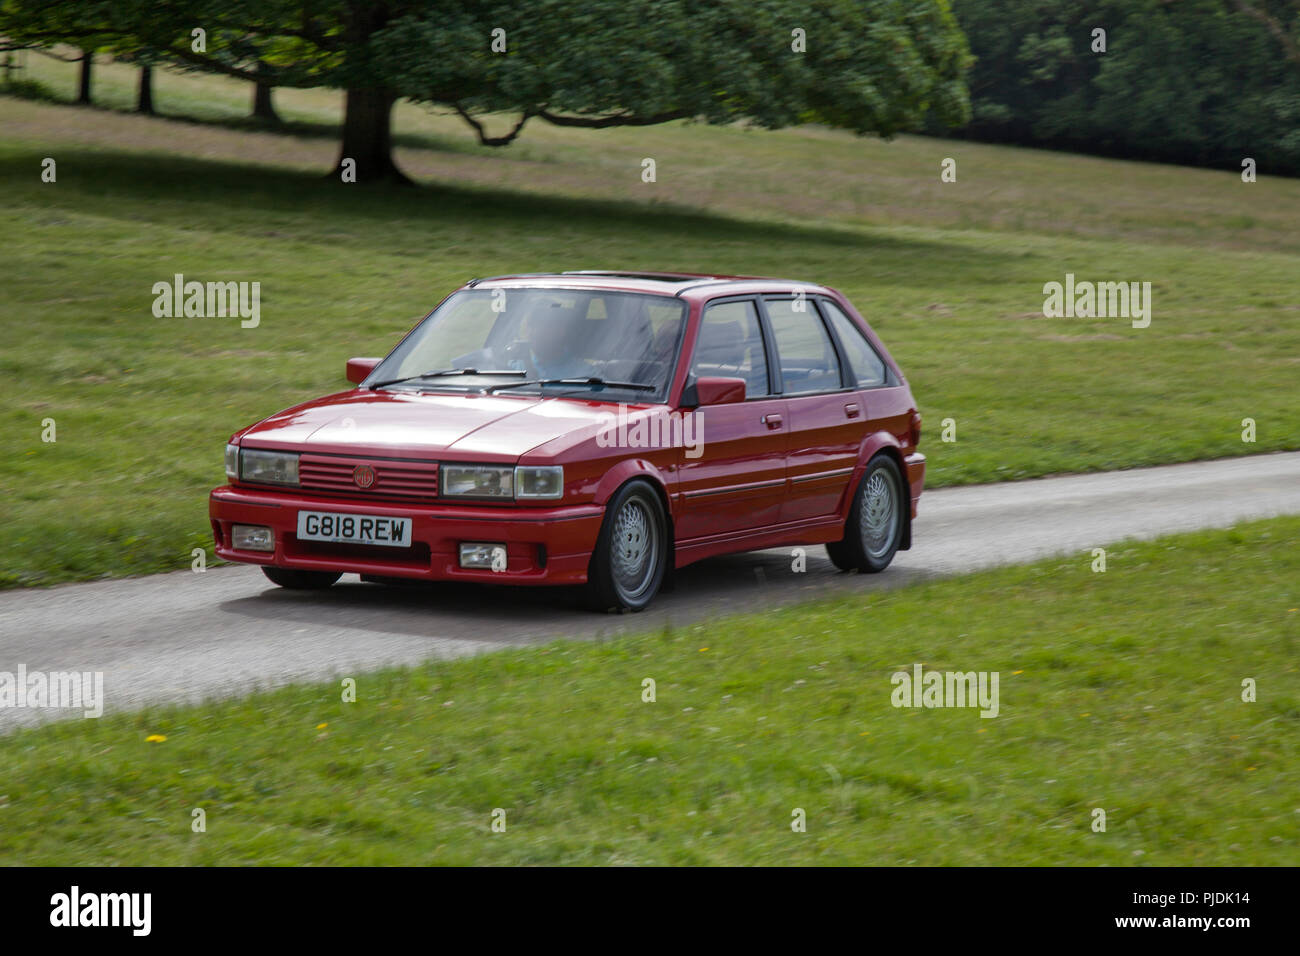 Red 1990 Rover Maestro MG TurboVintage, classic, veteran cars at Carnforth, UK - Stock Image